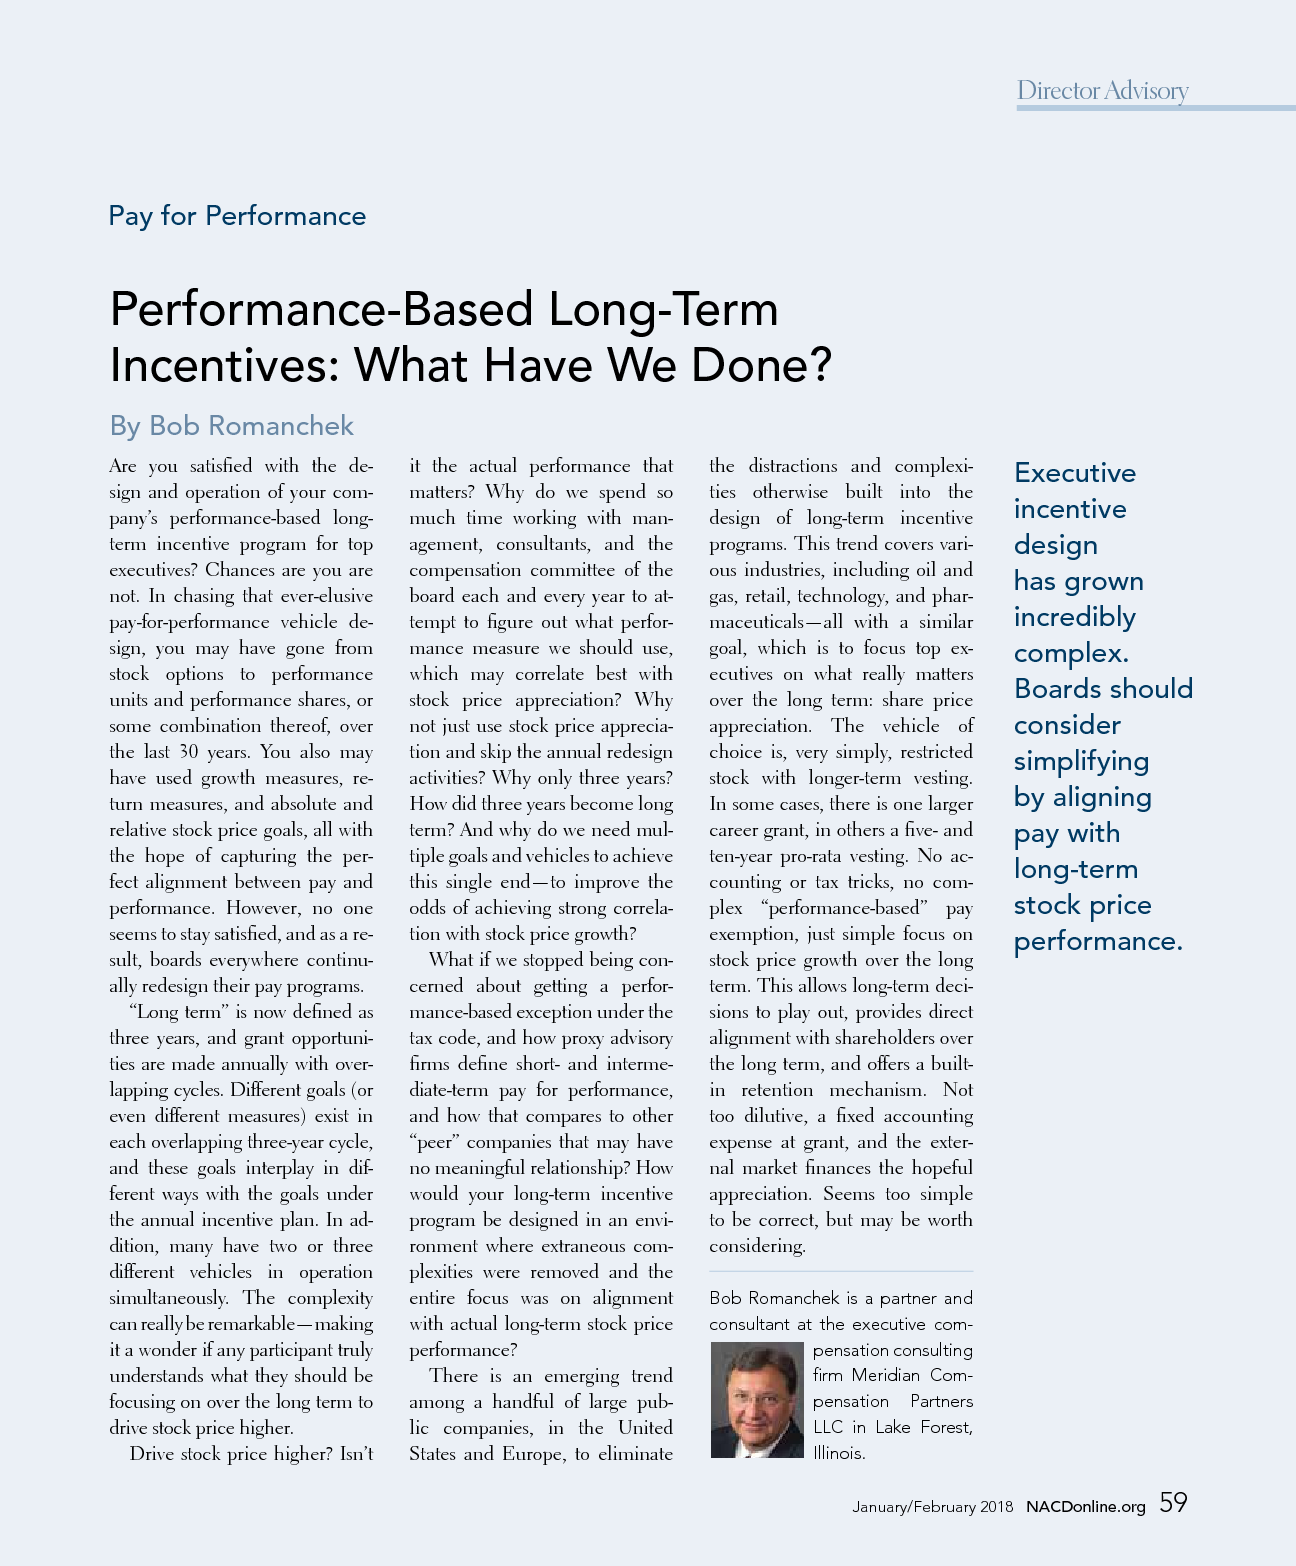 Performance-Based Long-Term Incentives: What Have We Done? (PDF)